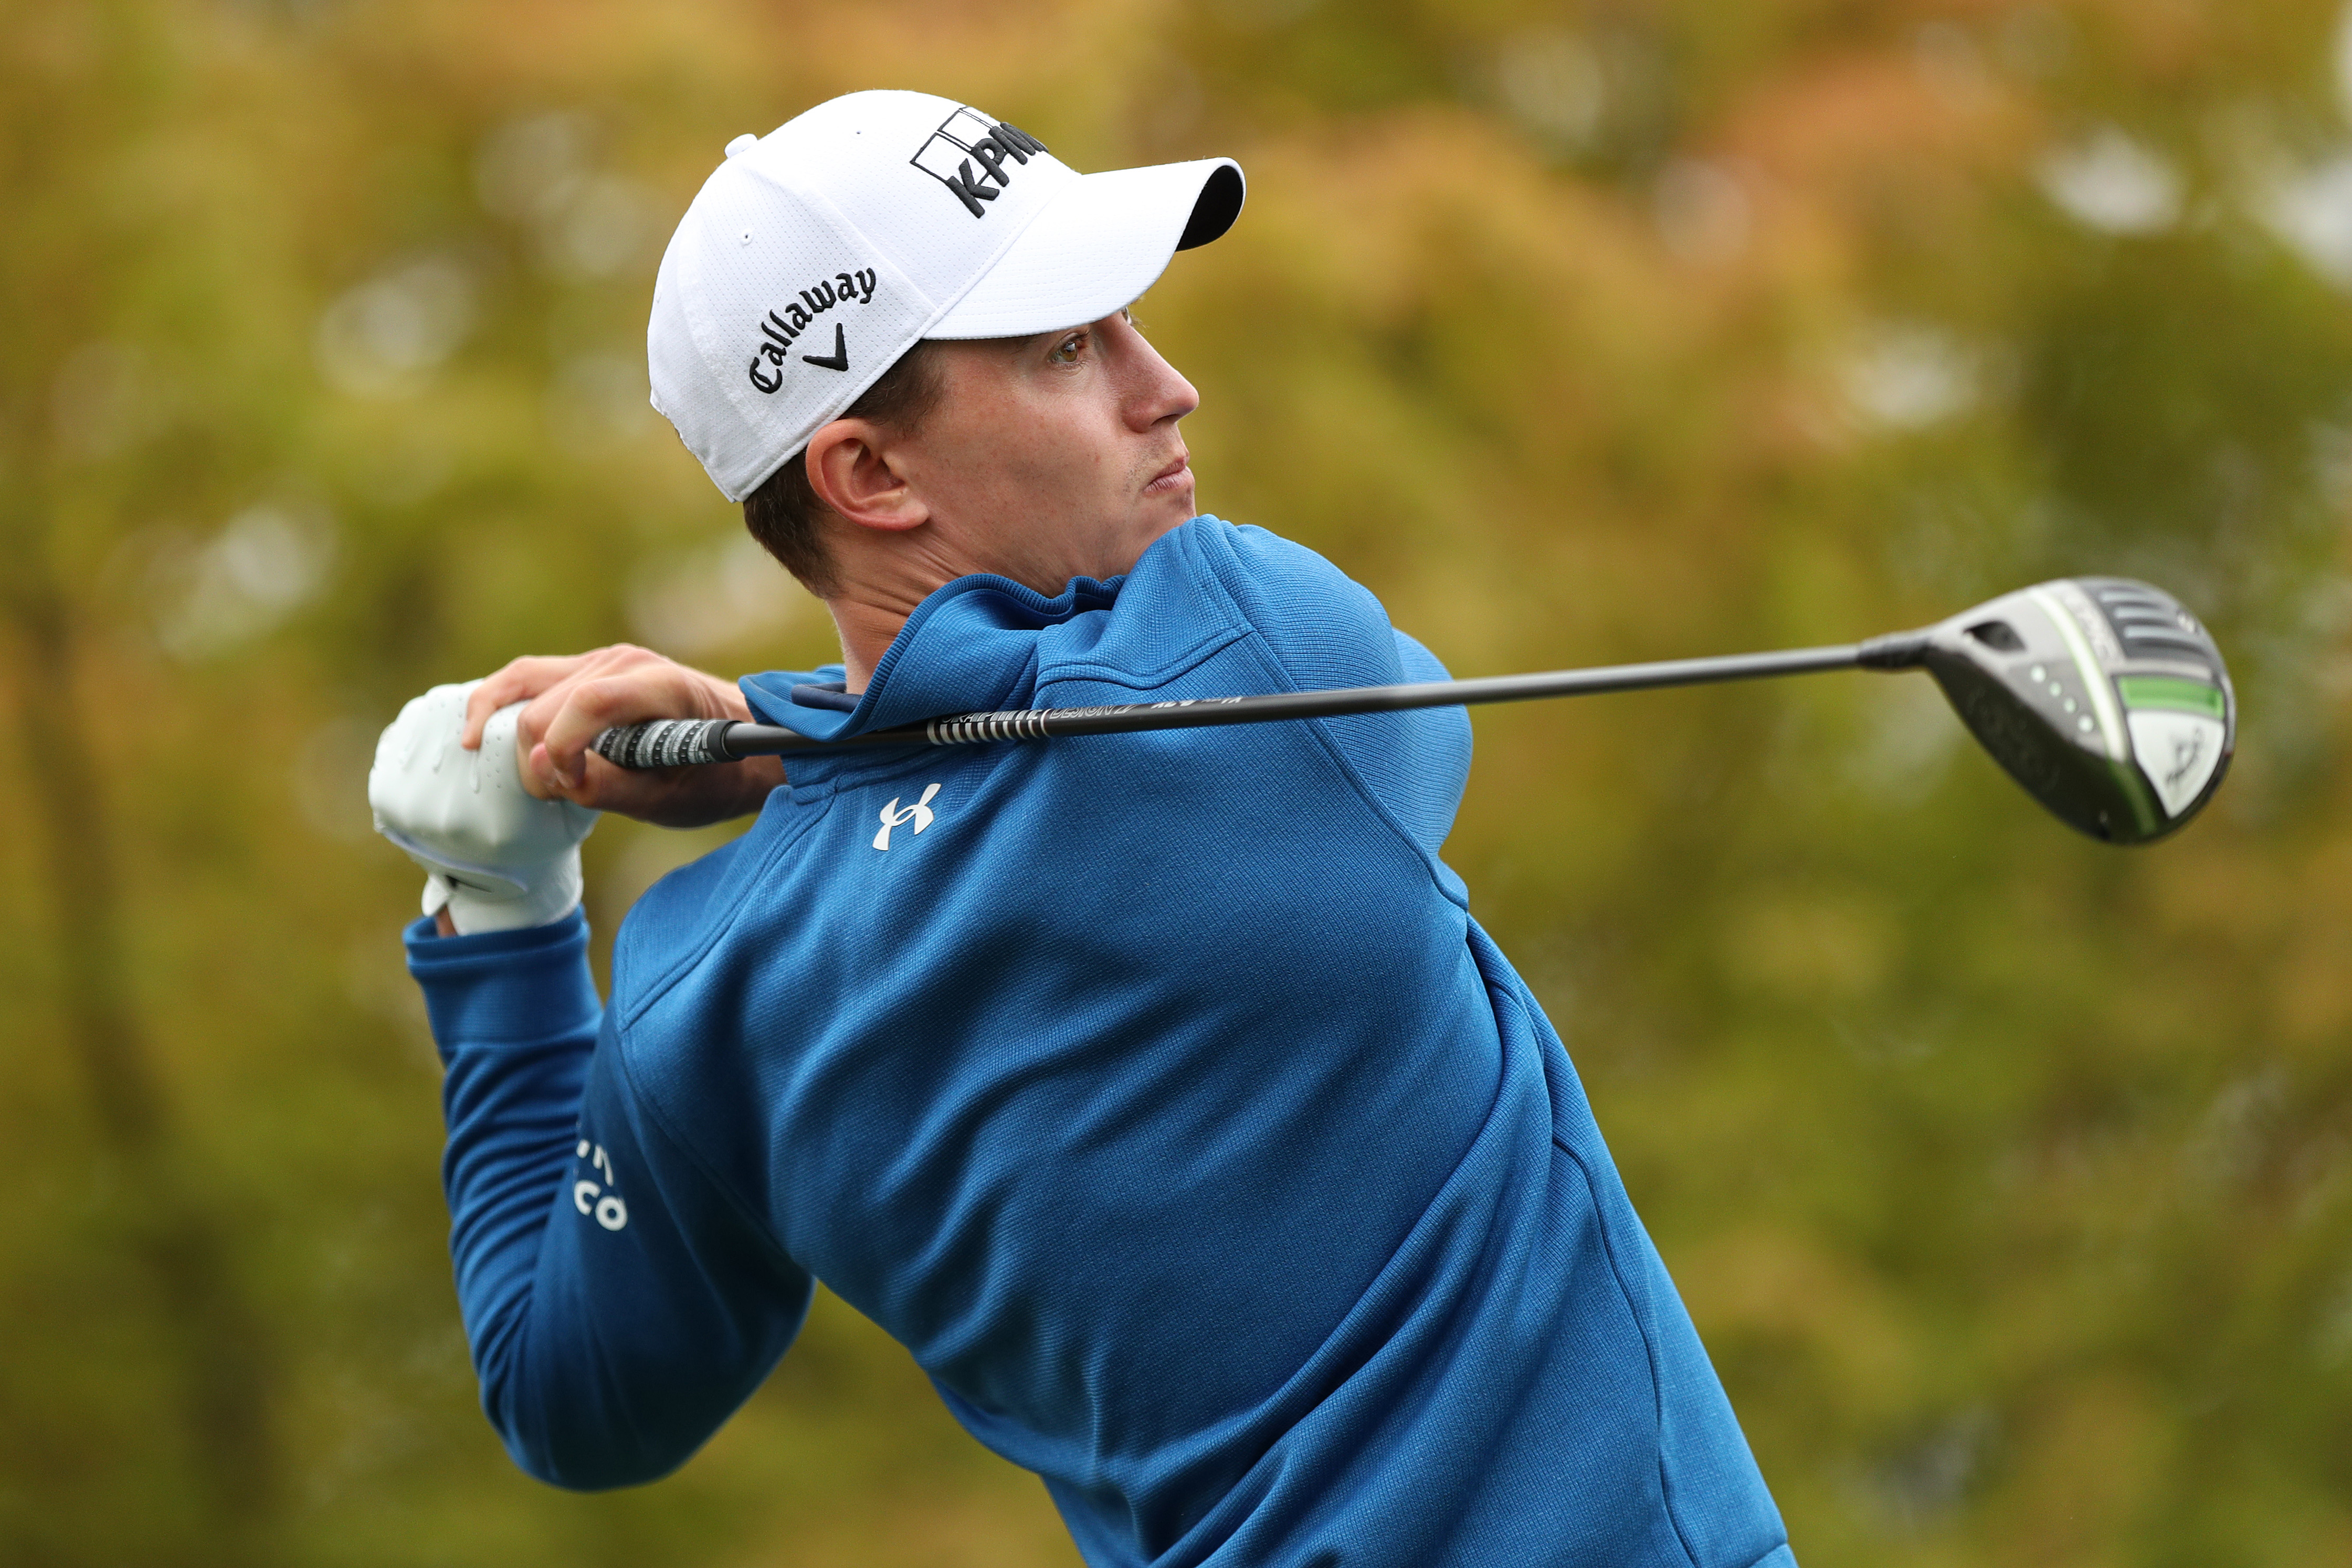 Maverick McNealy hits his tee shot on the first hole during round two of the Fortinet Championship at Silverado Resort and Spa on September 17, 2021 in Napa, California.